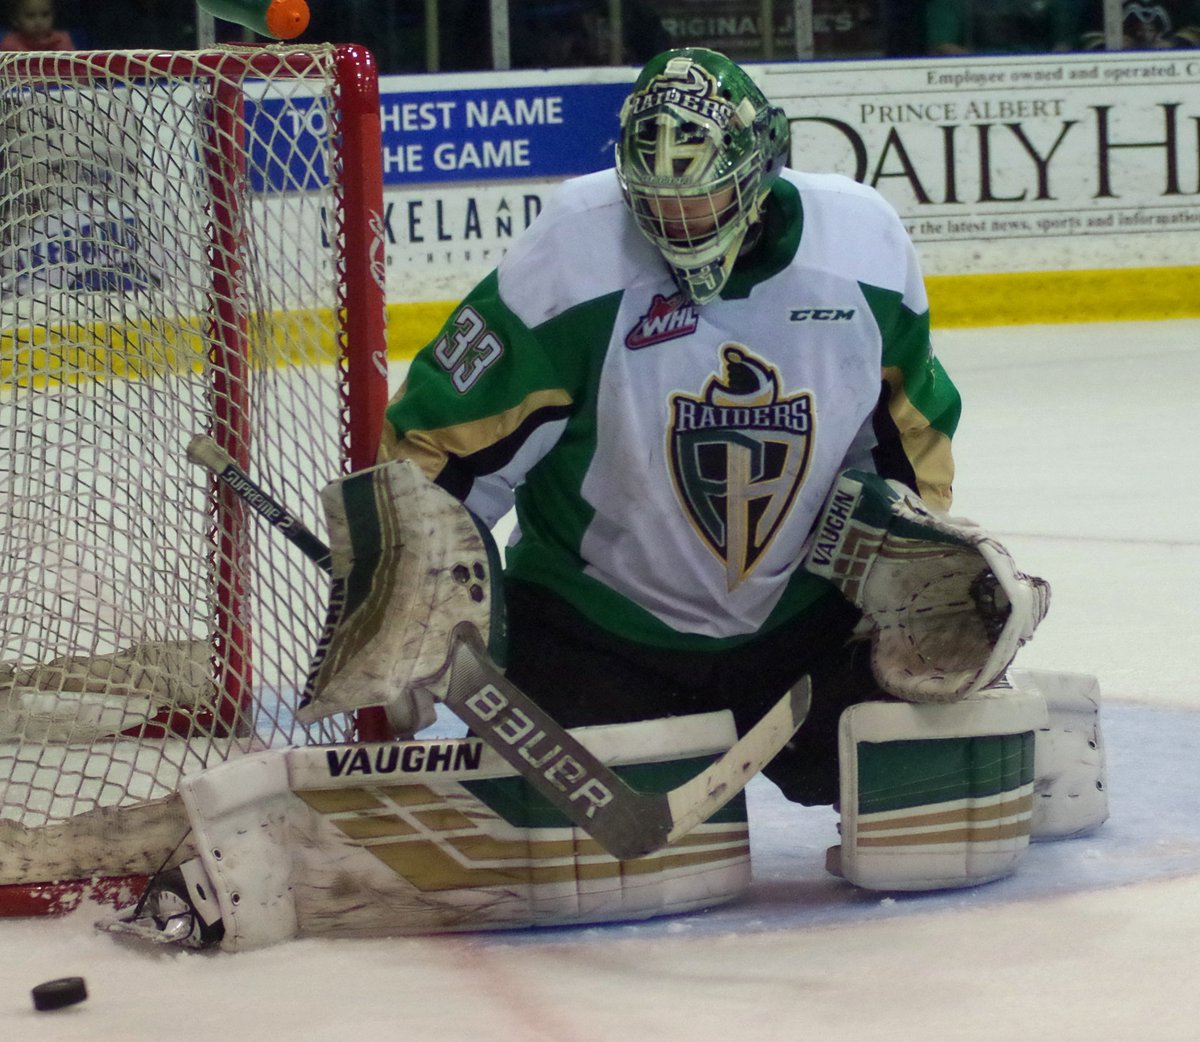 Nteminder @IceScott99 makes one of his 30 save in goal for the #PrinceAlbert #Raiders. #WHL. #WHLPlayoffs. #CHL.